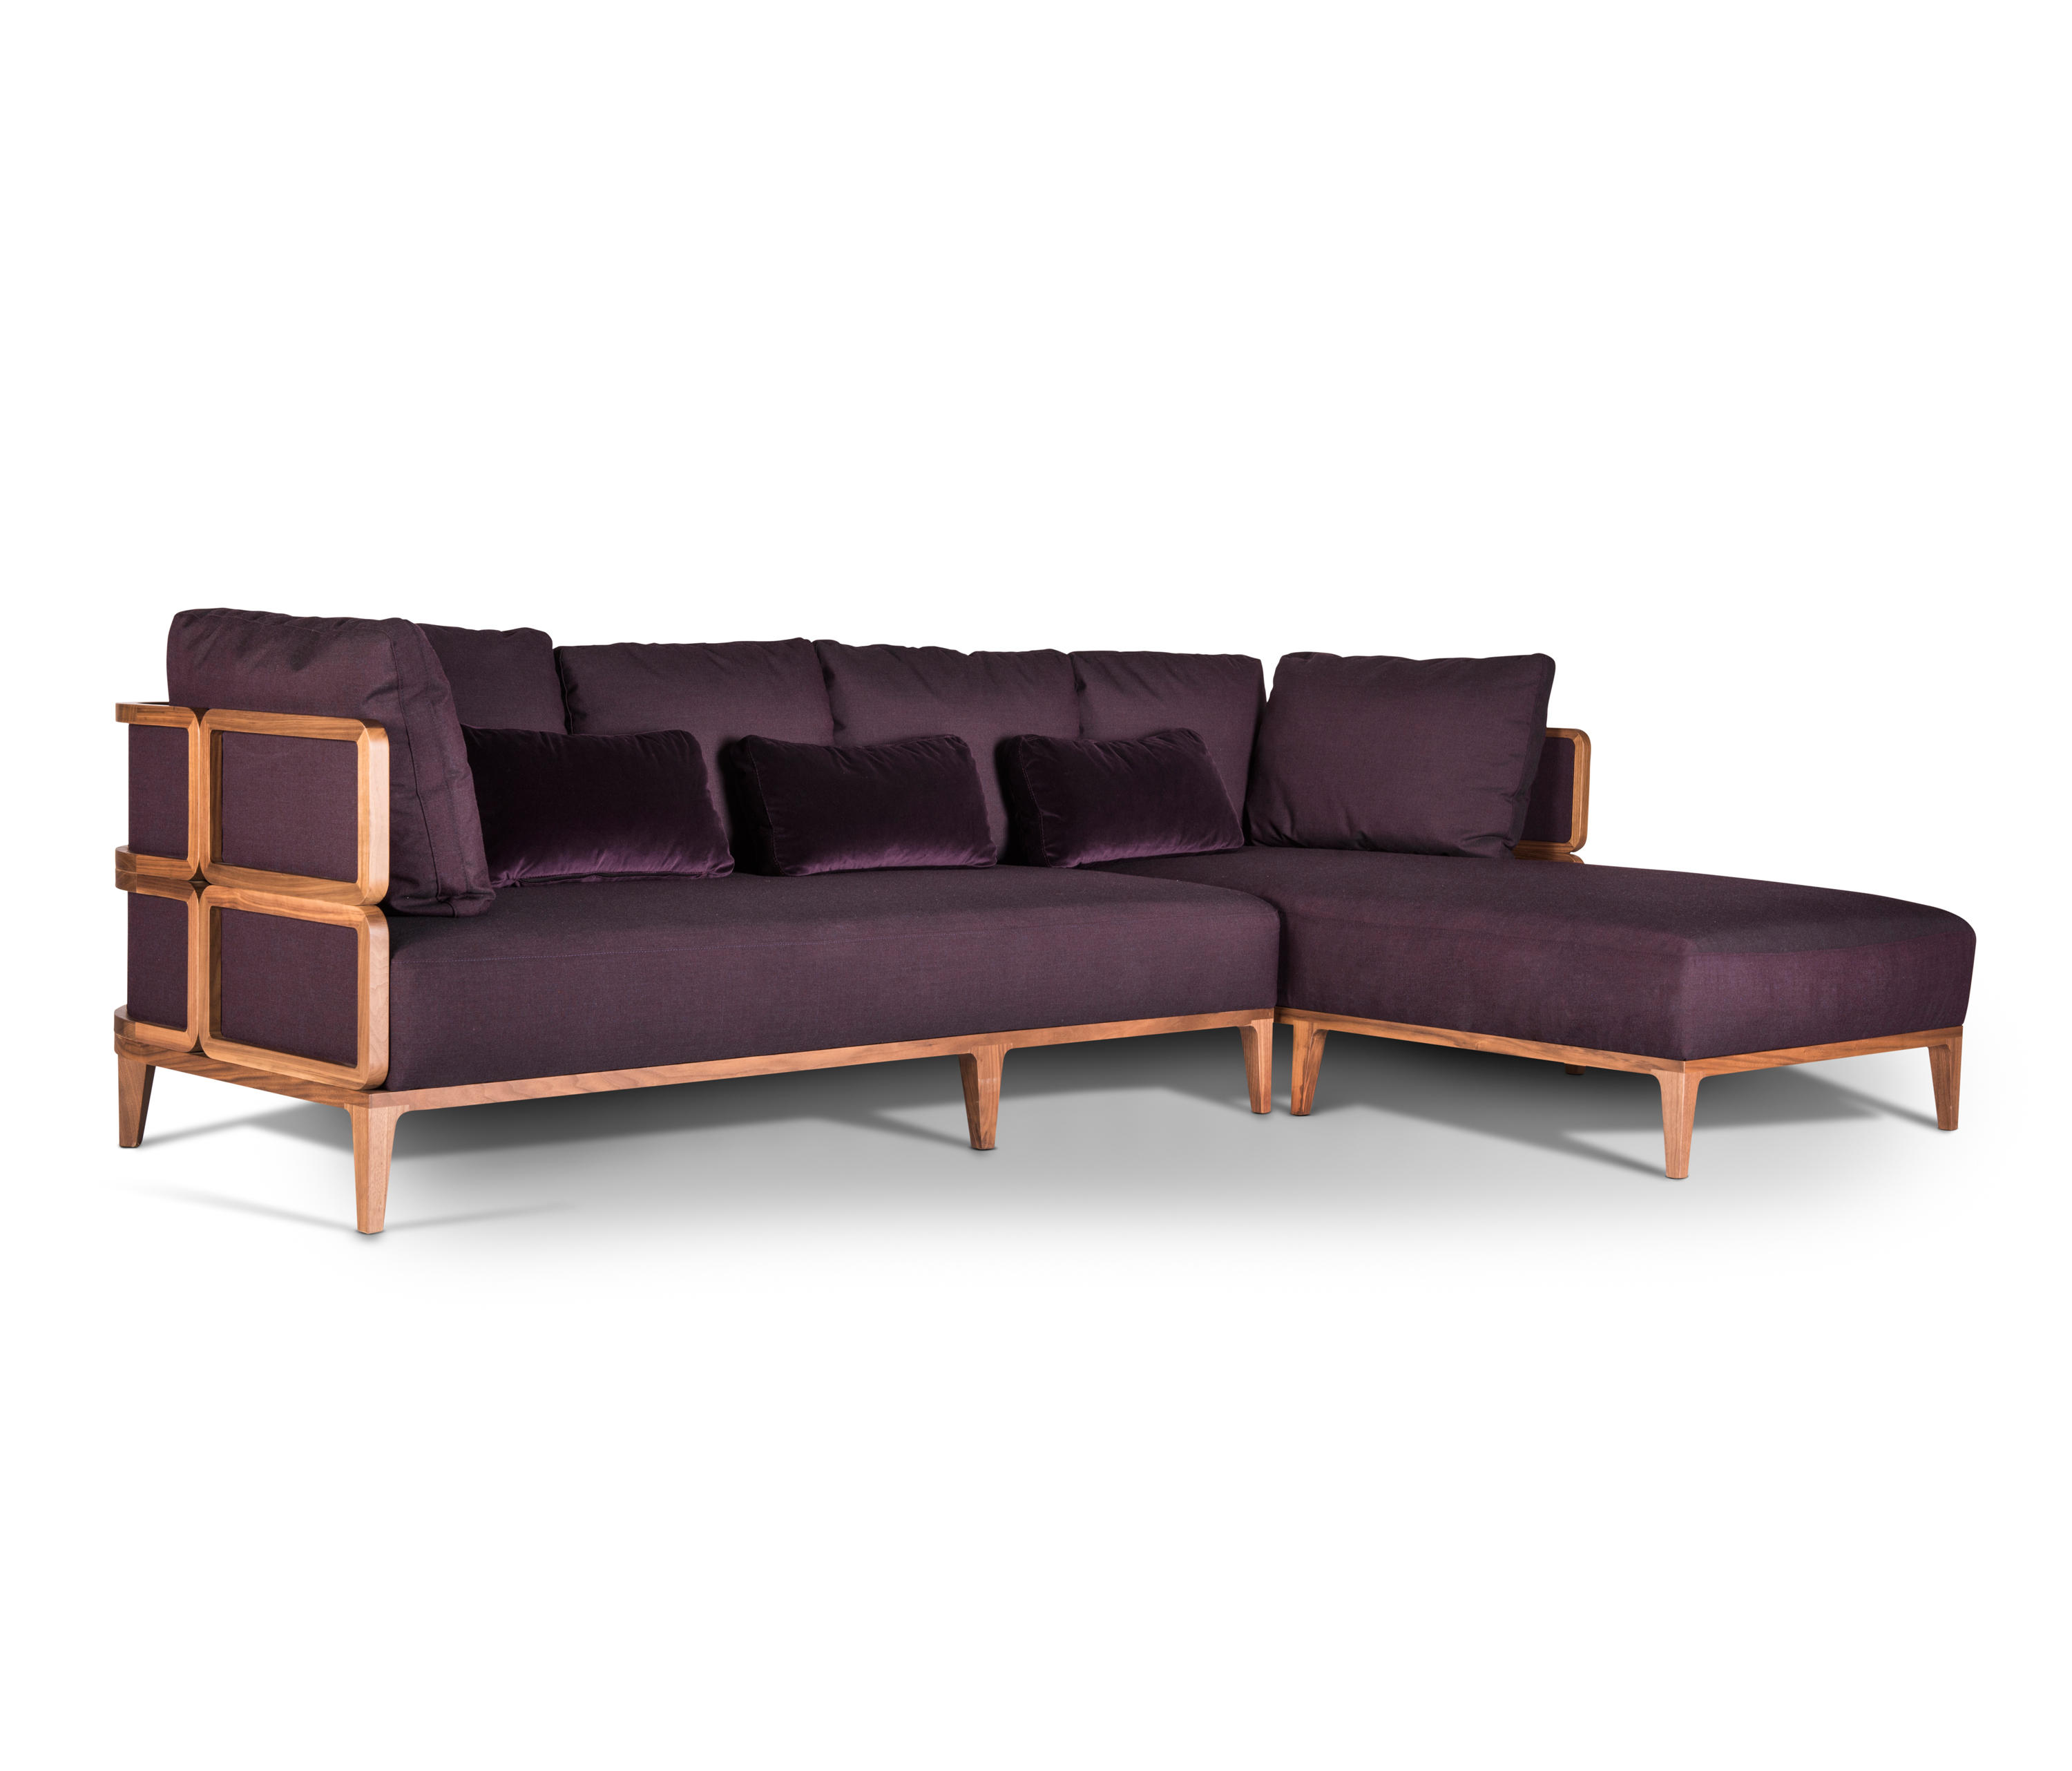 Promenade 185 with chaise longue sofas from wiener gtv for Chaise longue designer